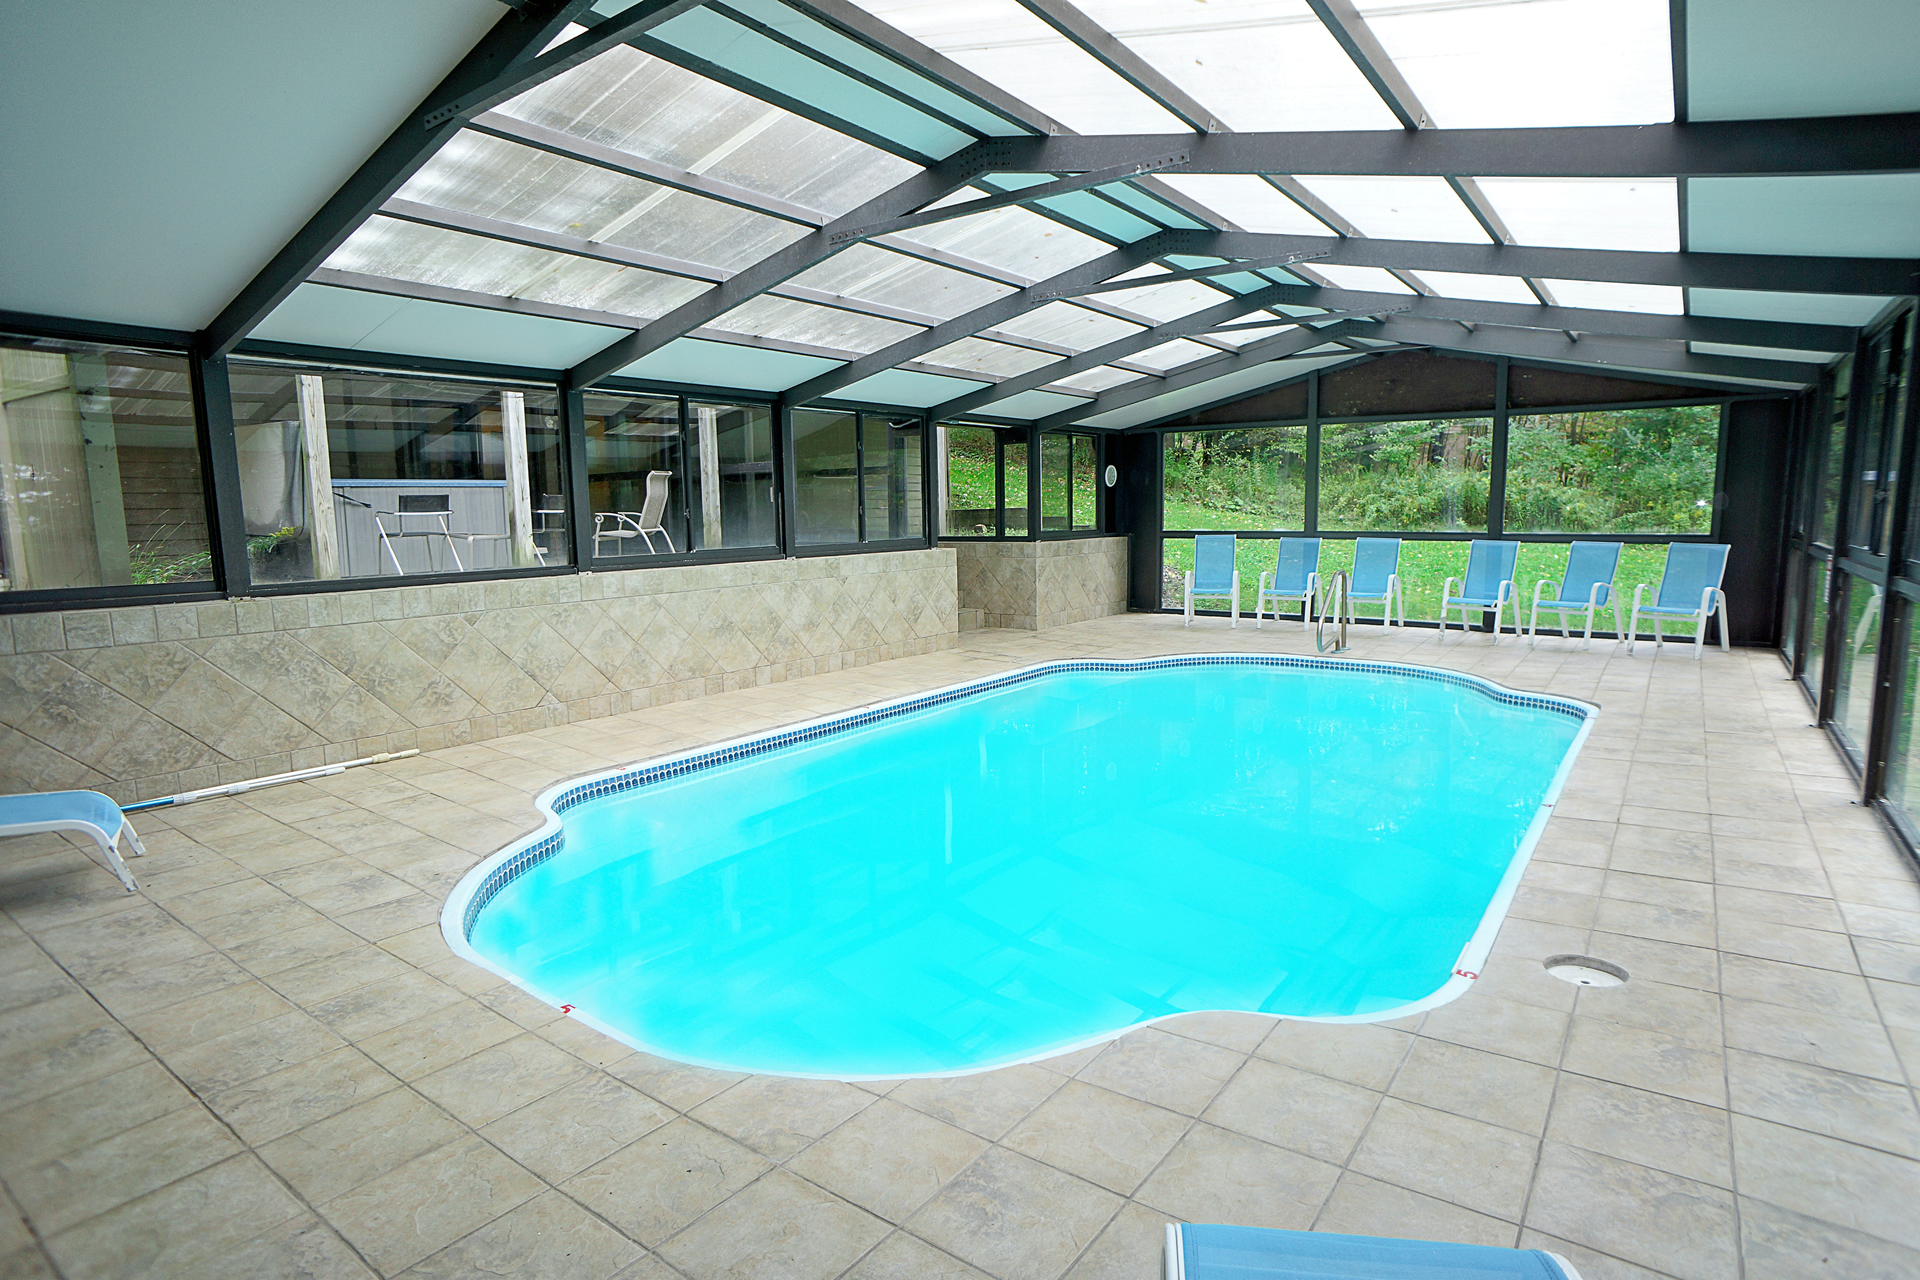 Railey mountains lake vacations indoor luxury heated pool in deep creep lake